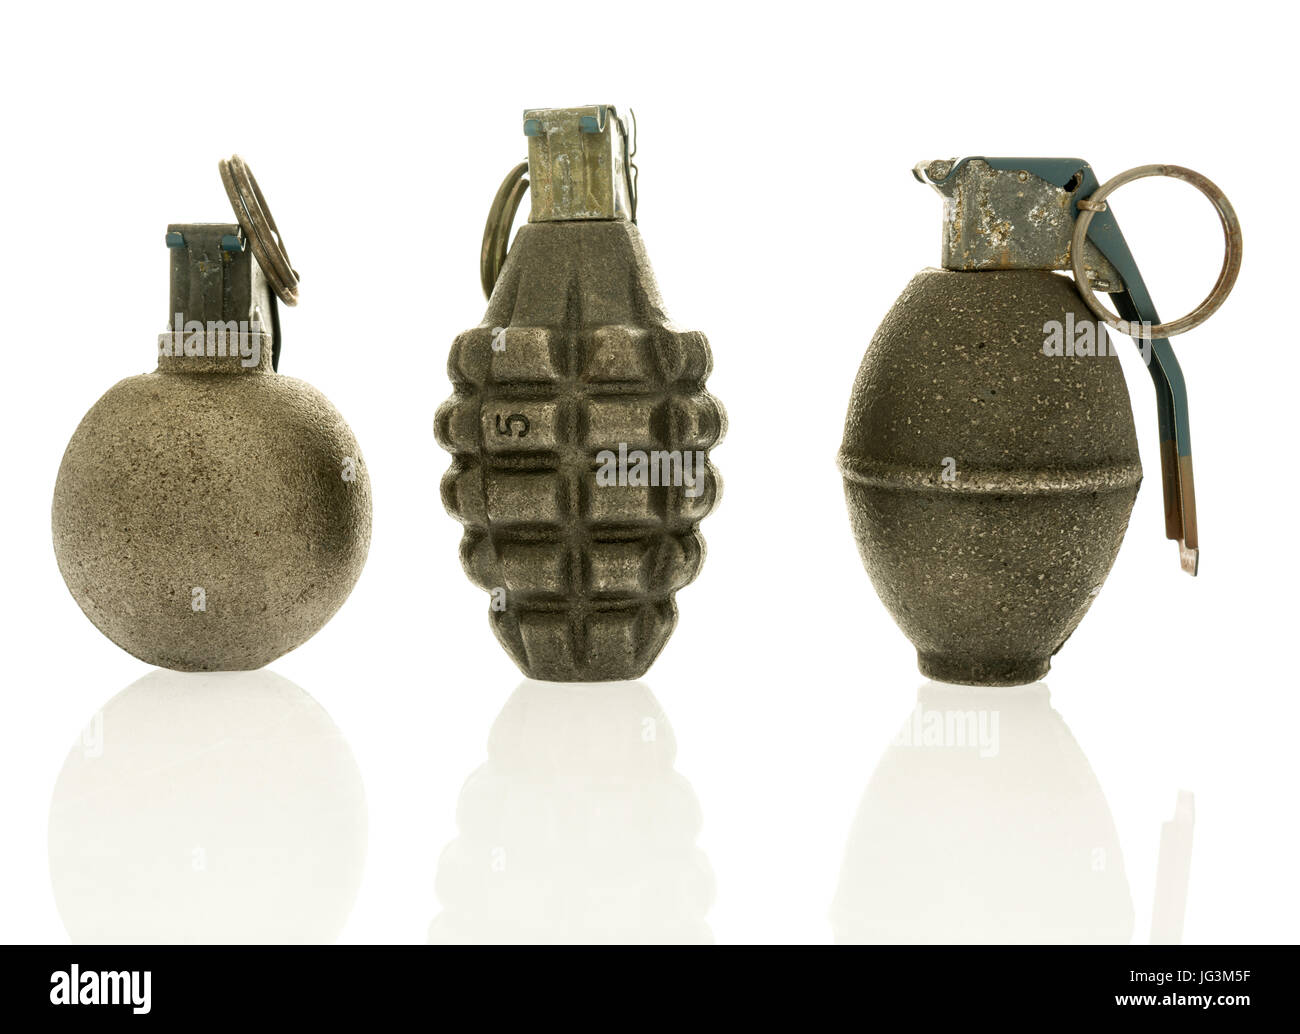 Three grenades of baseball, pineapple and lemon on an isolated background. - Stock Image